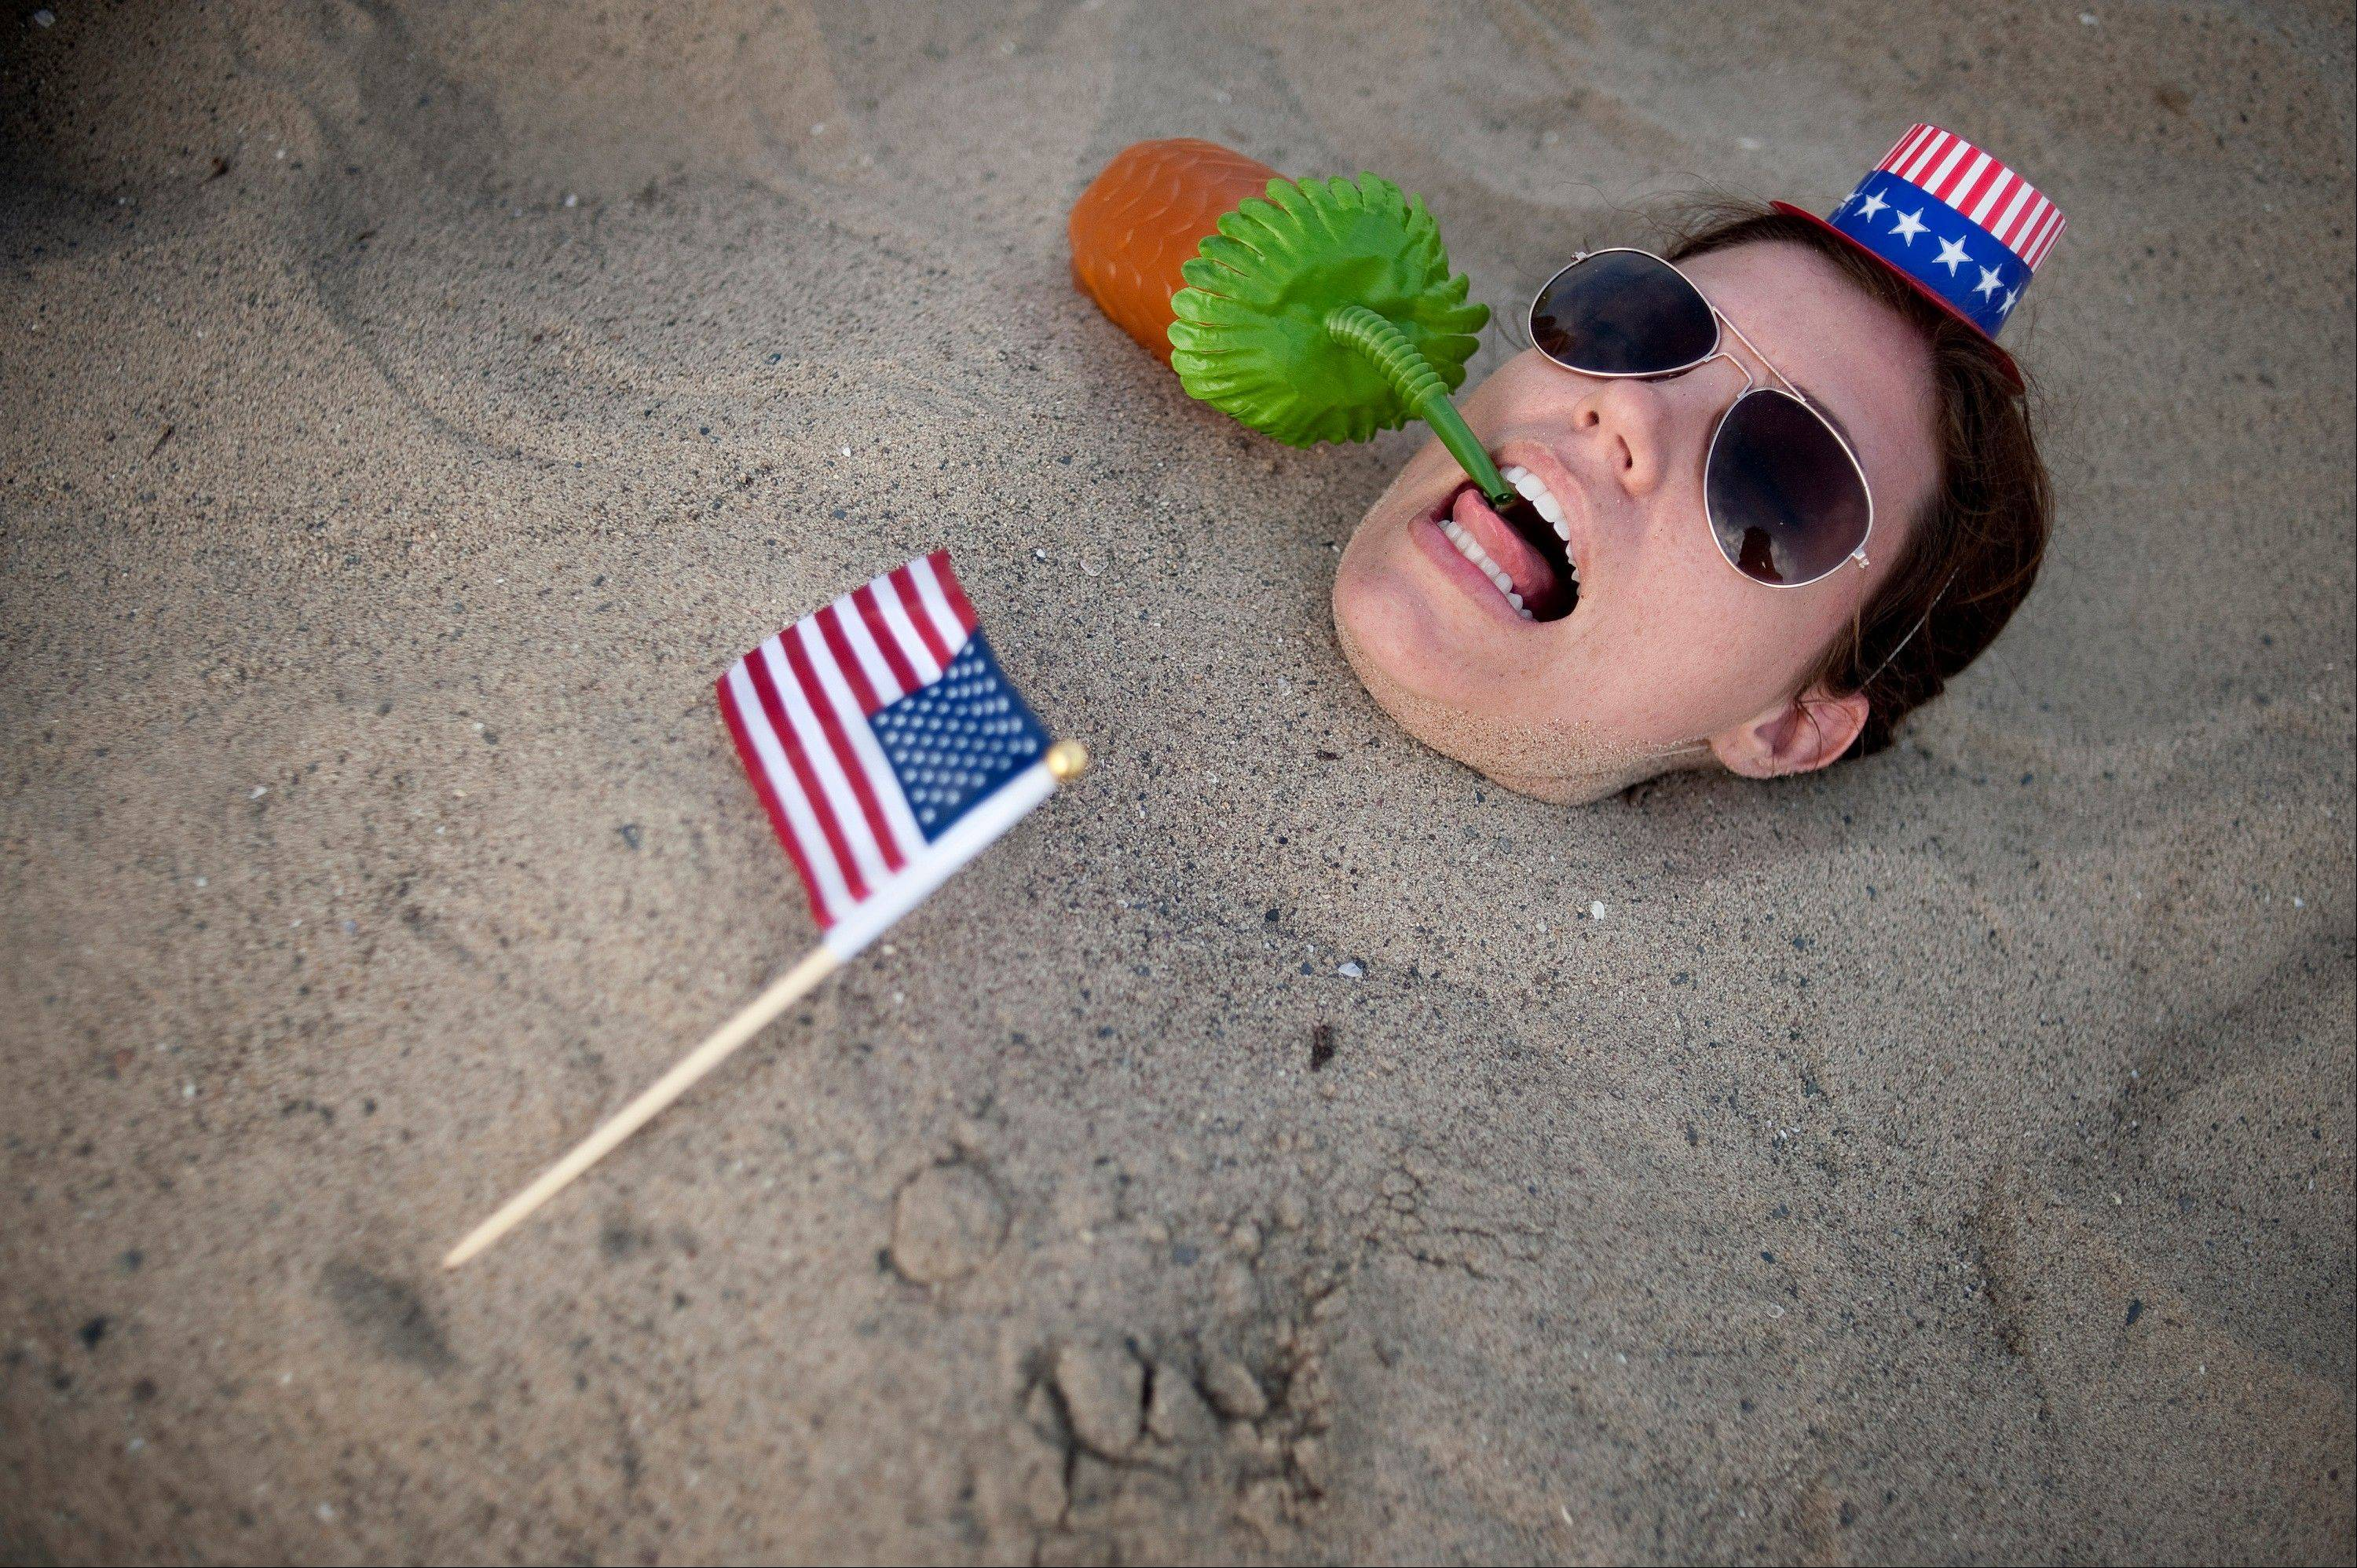 Alison Turner struggles for her straw after being buried by friends on Santa Monica Beach in Santa Monica, Calif., on Wednesday, July 4, 2012.